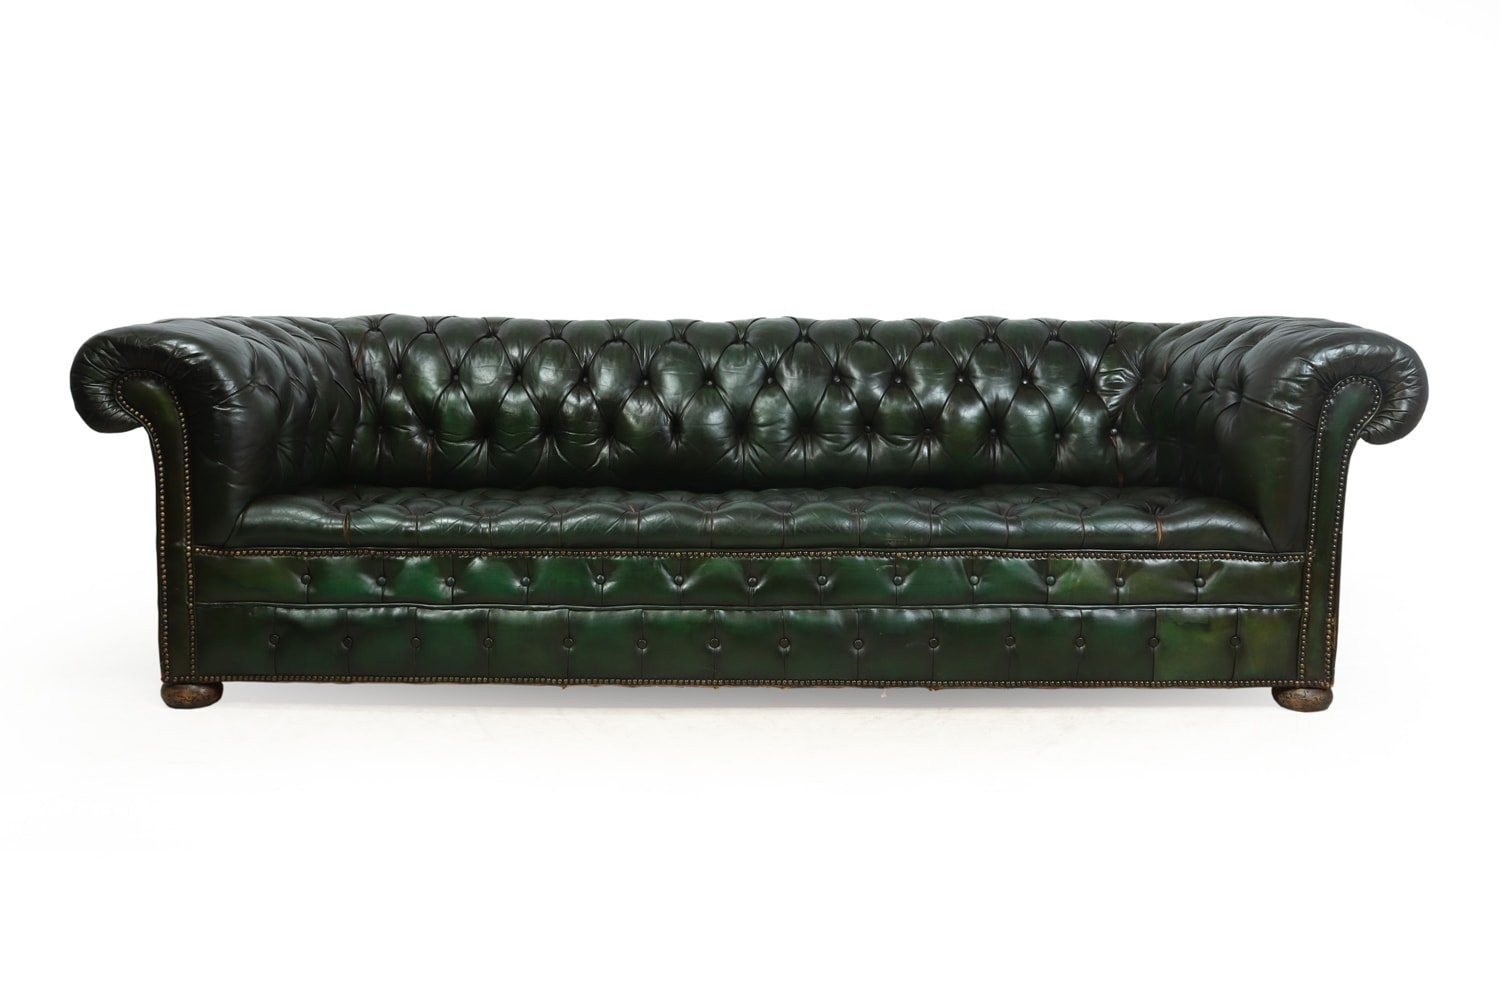 Vintage Green Leather Chesterfield Sofa 119295